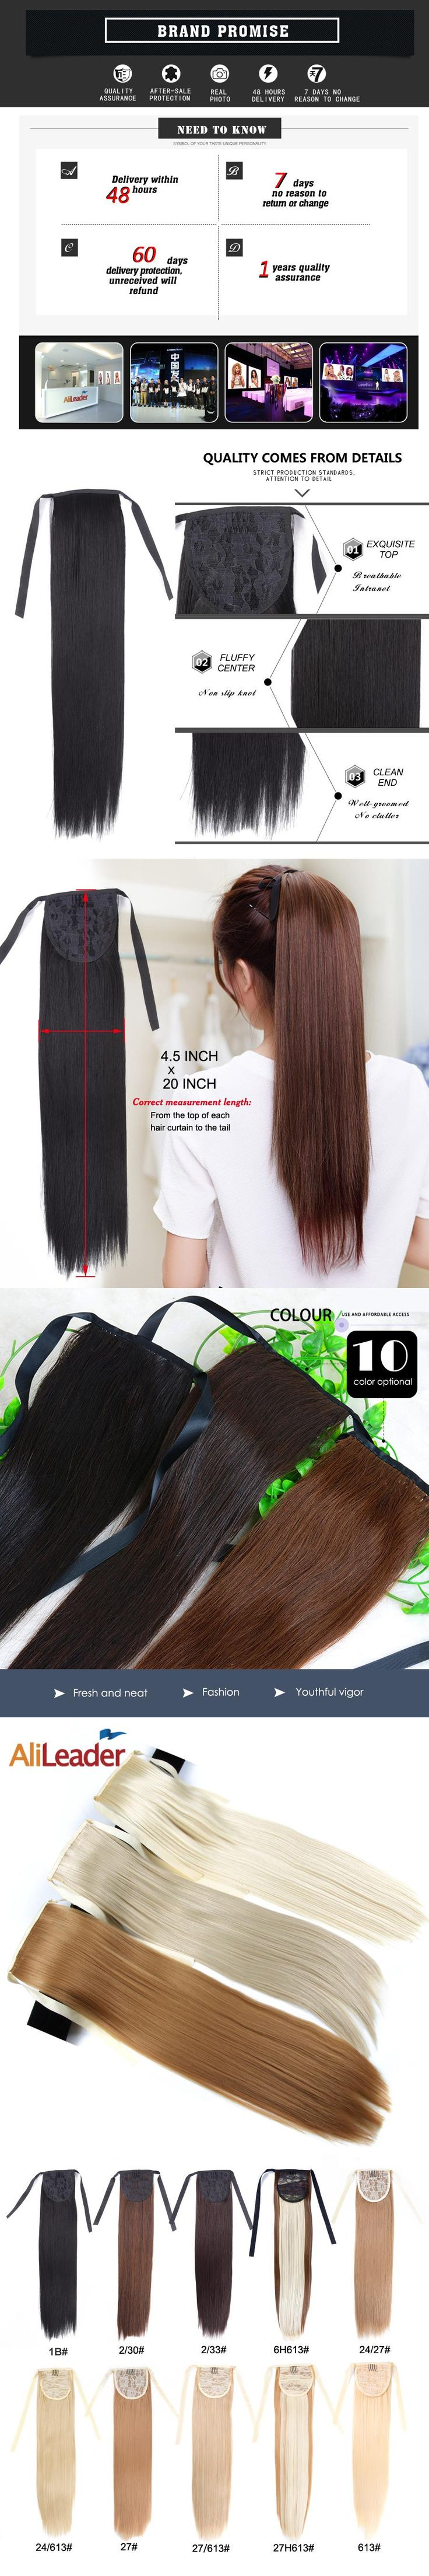 AliLeader Products Dark Brown Ponytail Hair Piece 50CM 80G 10Colors Synthetic Long Straight Pony Tail Hair Extensions Clip In